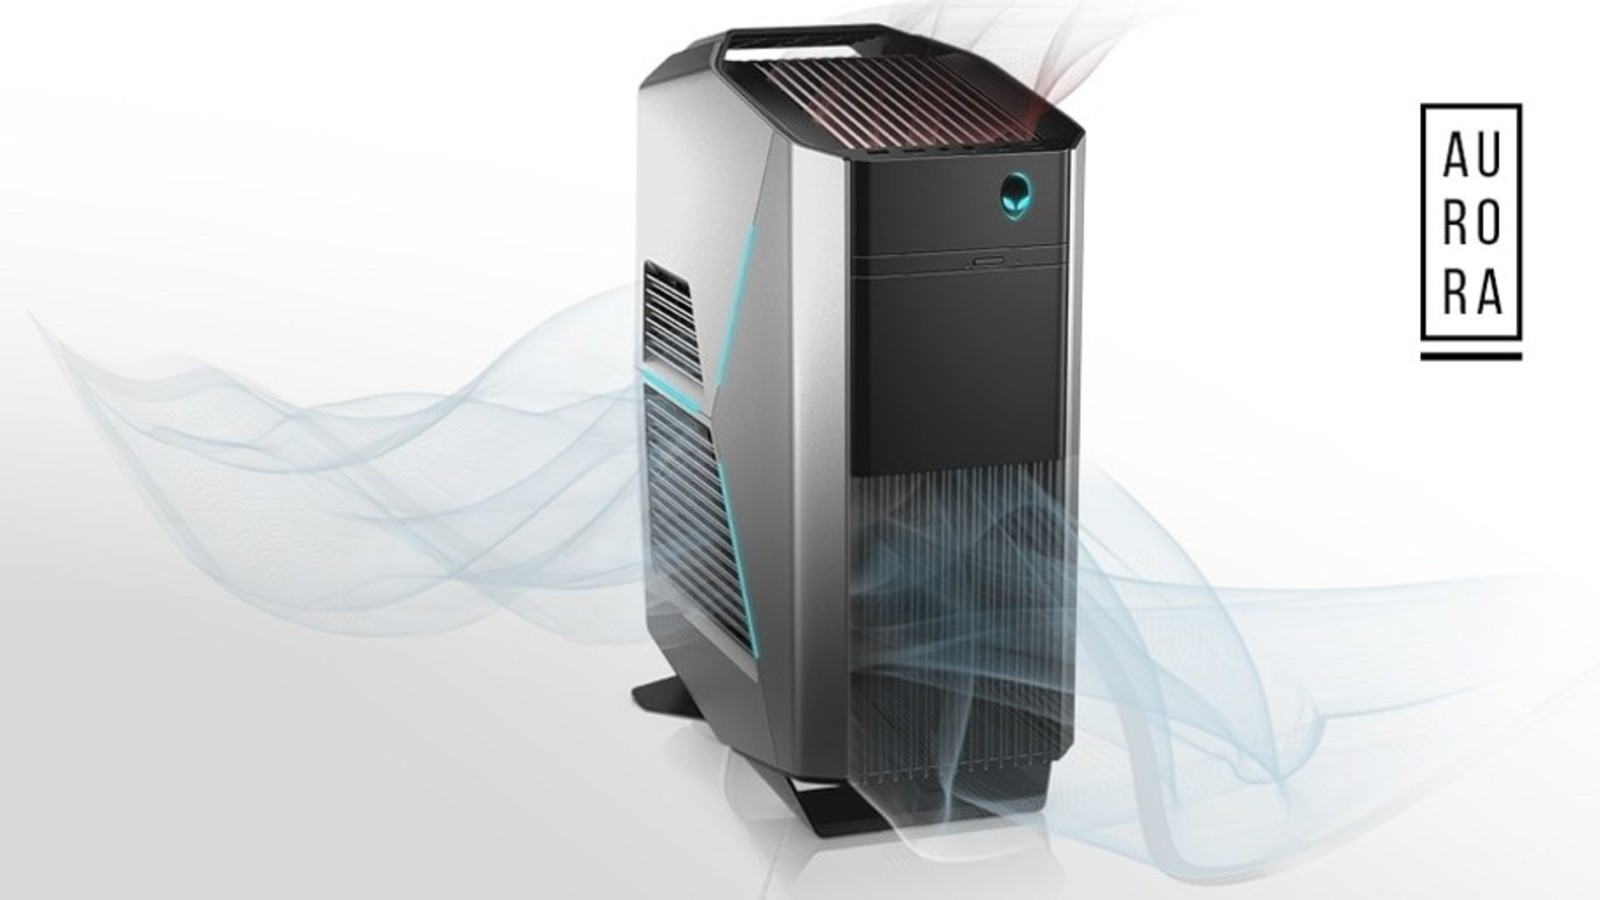 DELL ALIENWARE AURORA R8 GAMING PC Intel Core i7 9700K 16GB RAM DDR4 1TB  HDD+ 256GB SSD NVIDIA Ge